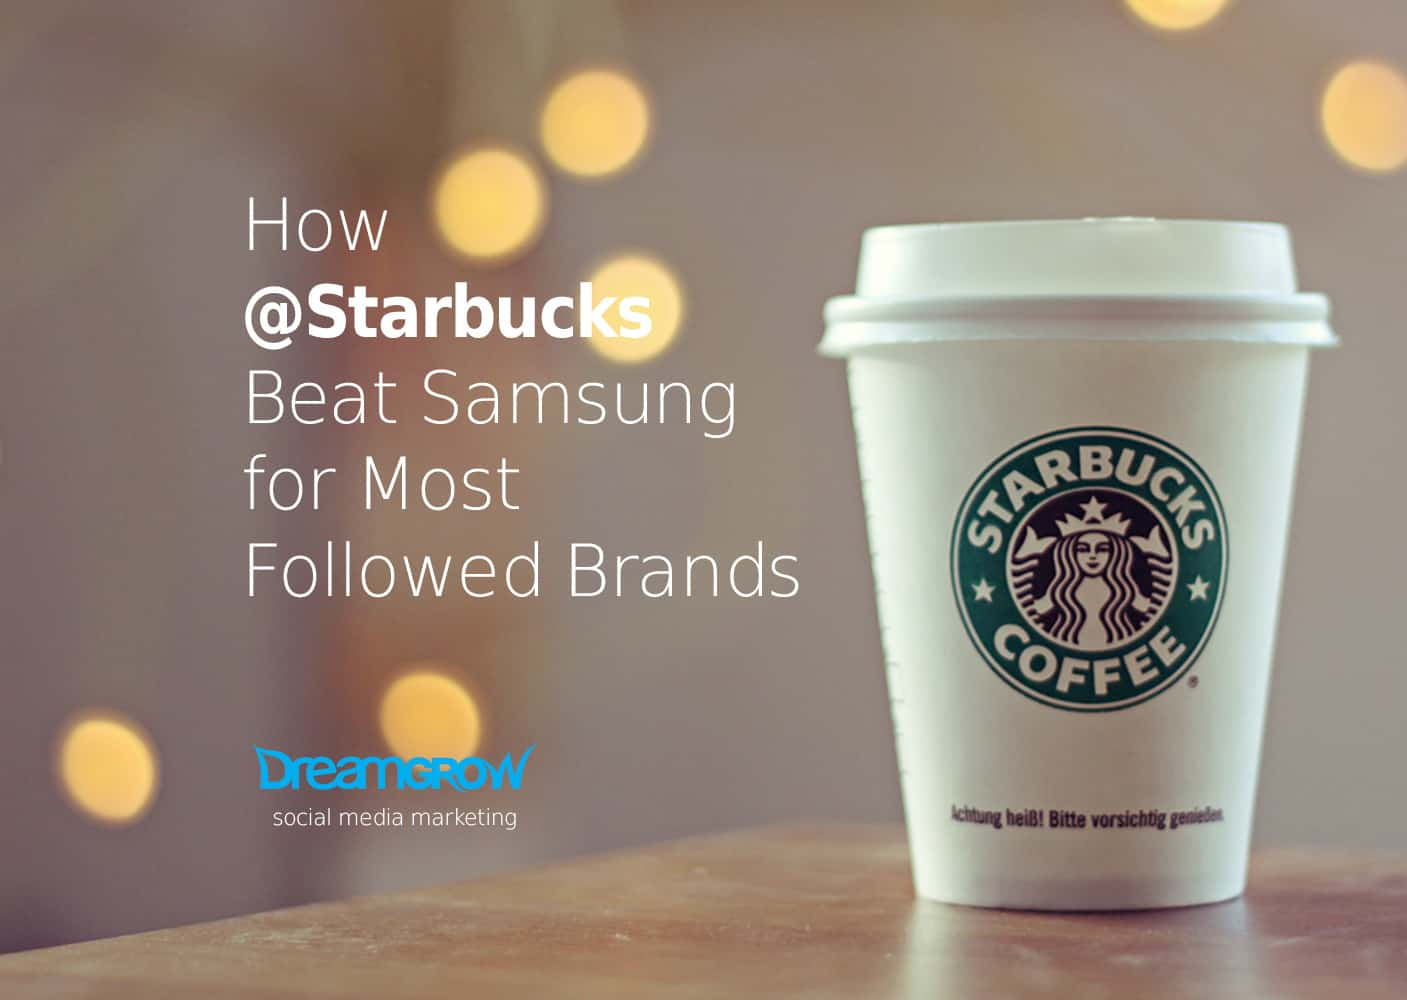 starbucks most followed brand